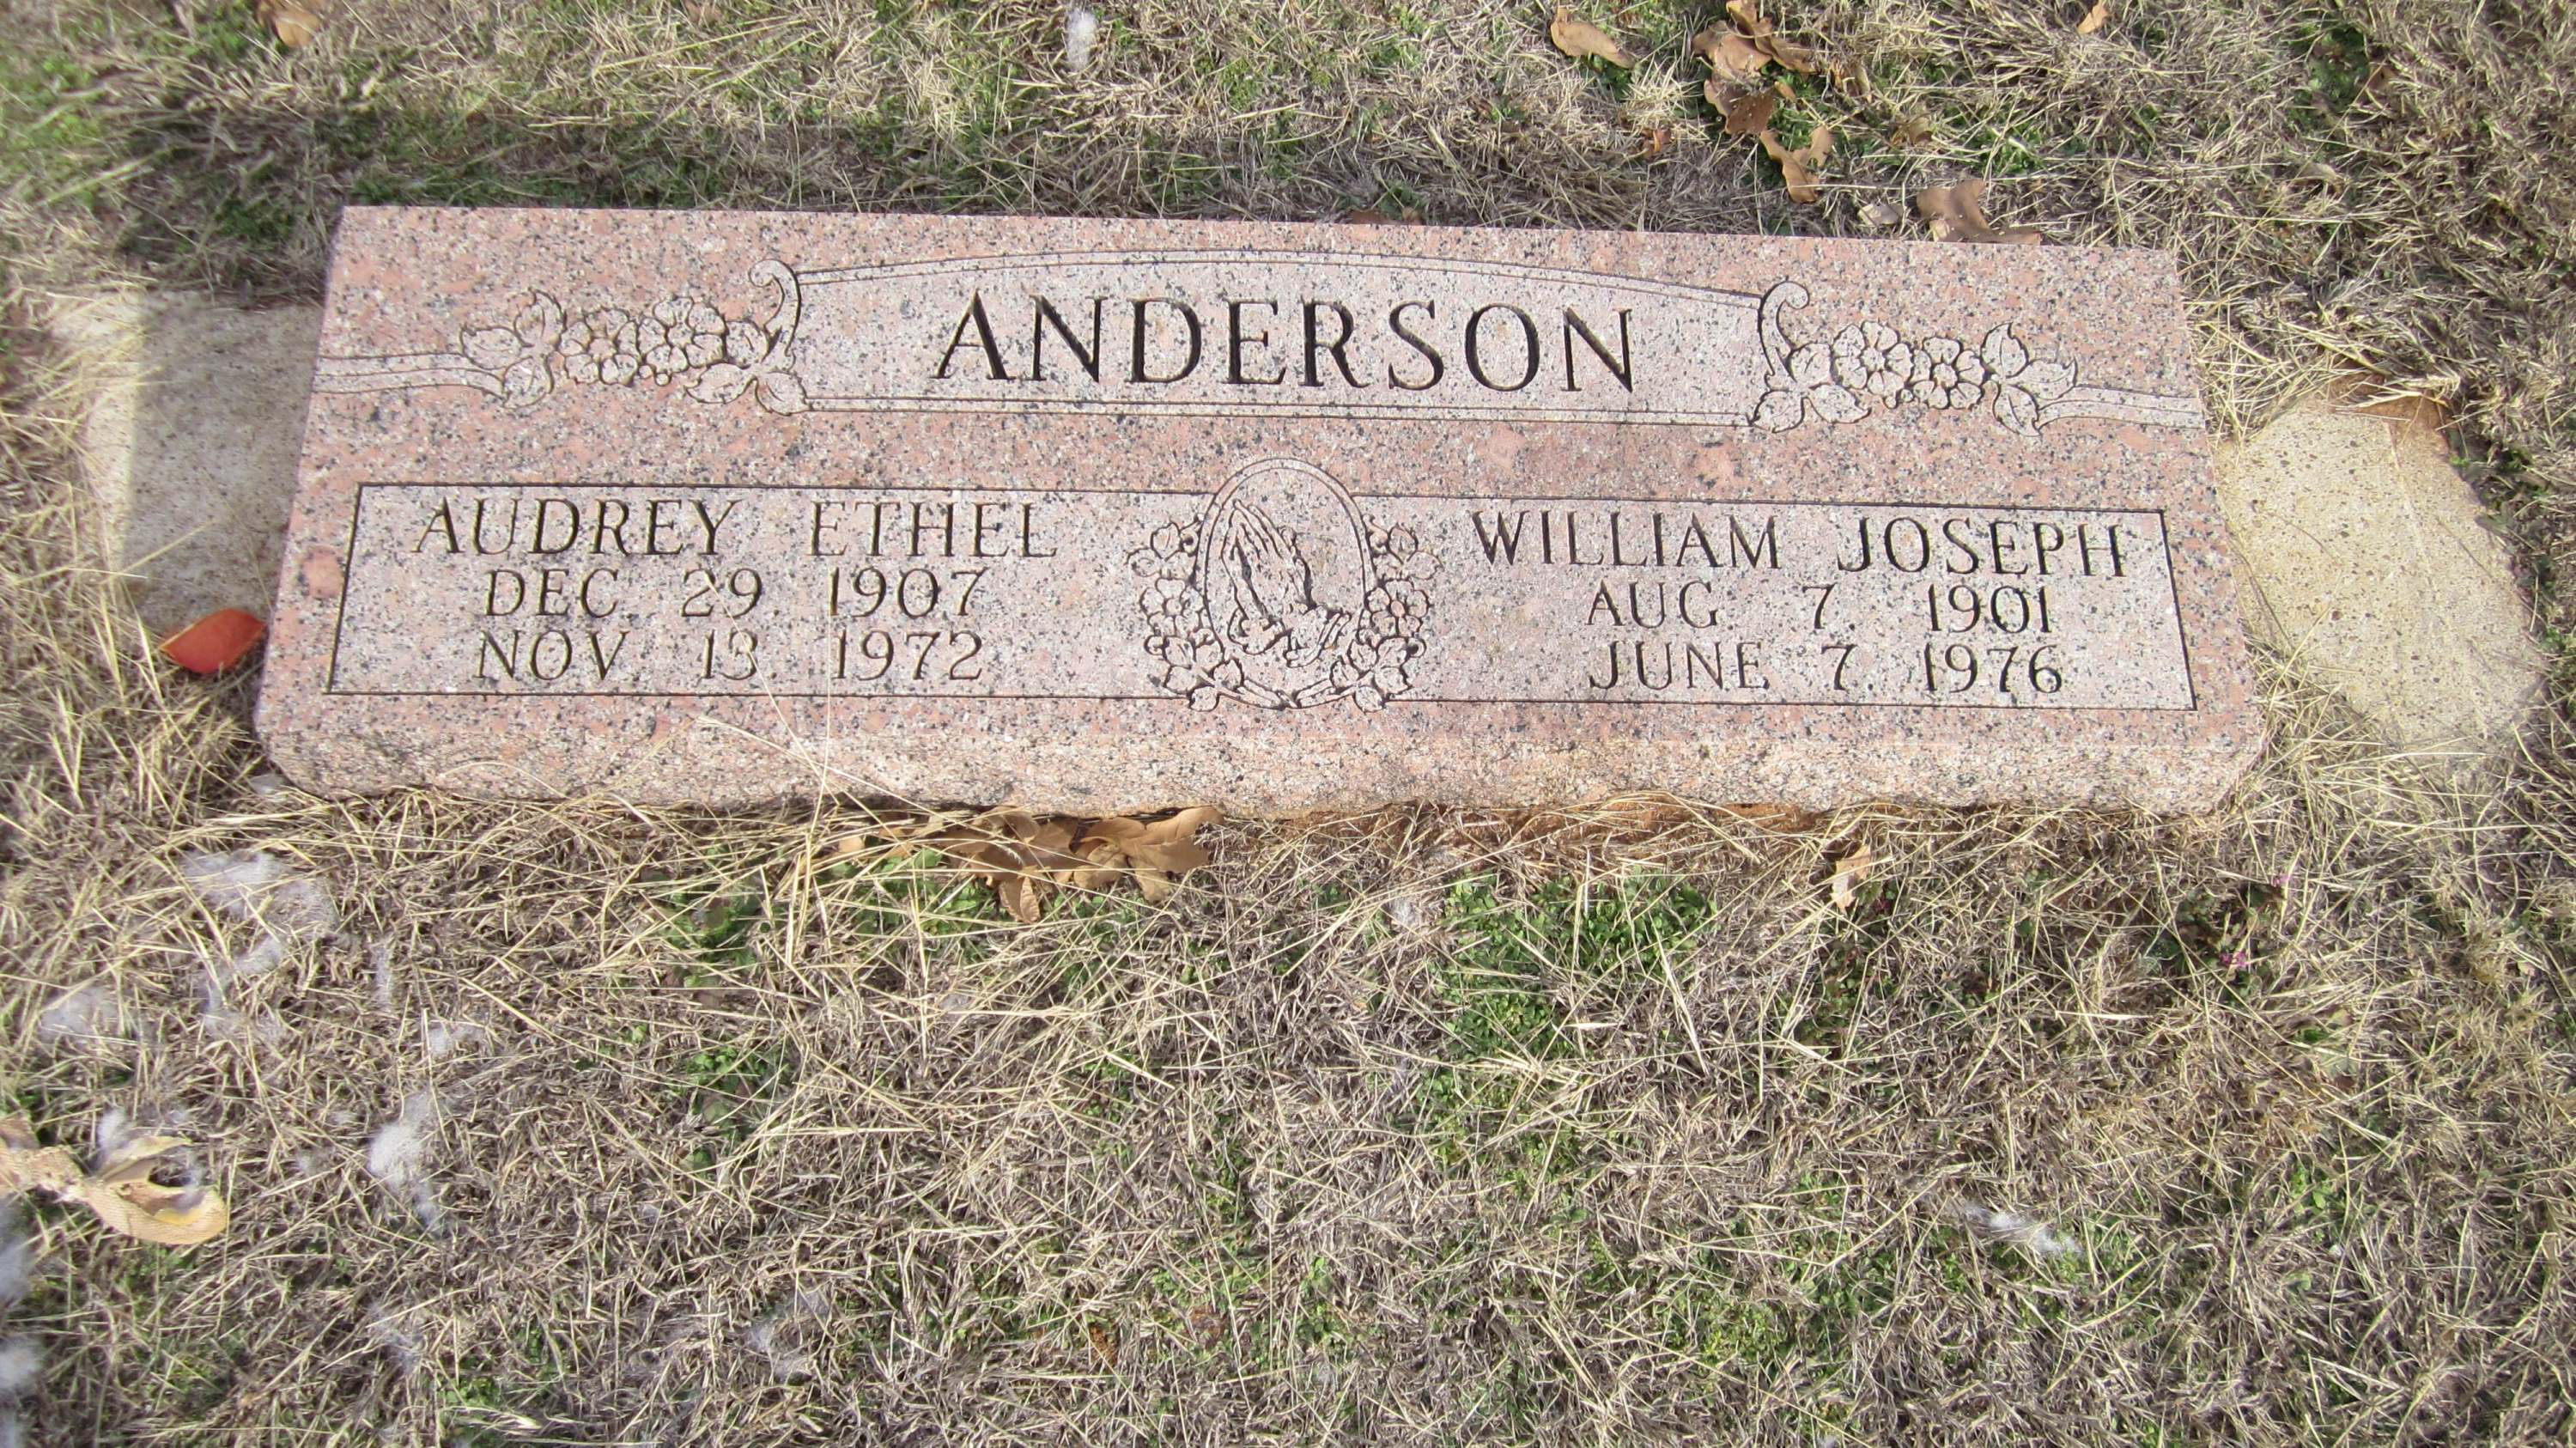 West Bridgeport Cemetery Inforamtion And Headstone Pictures Wise